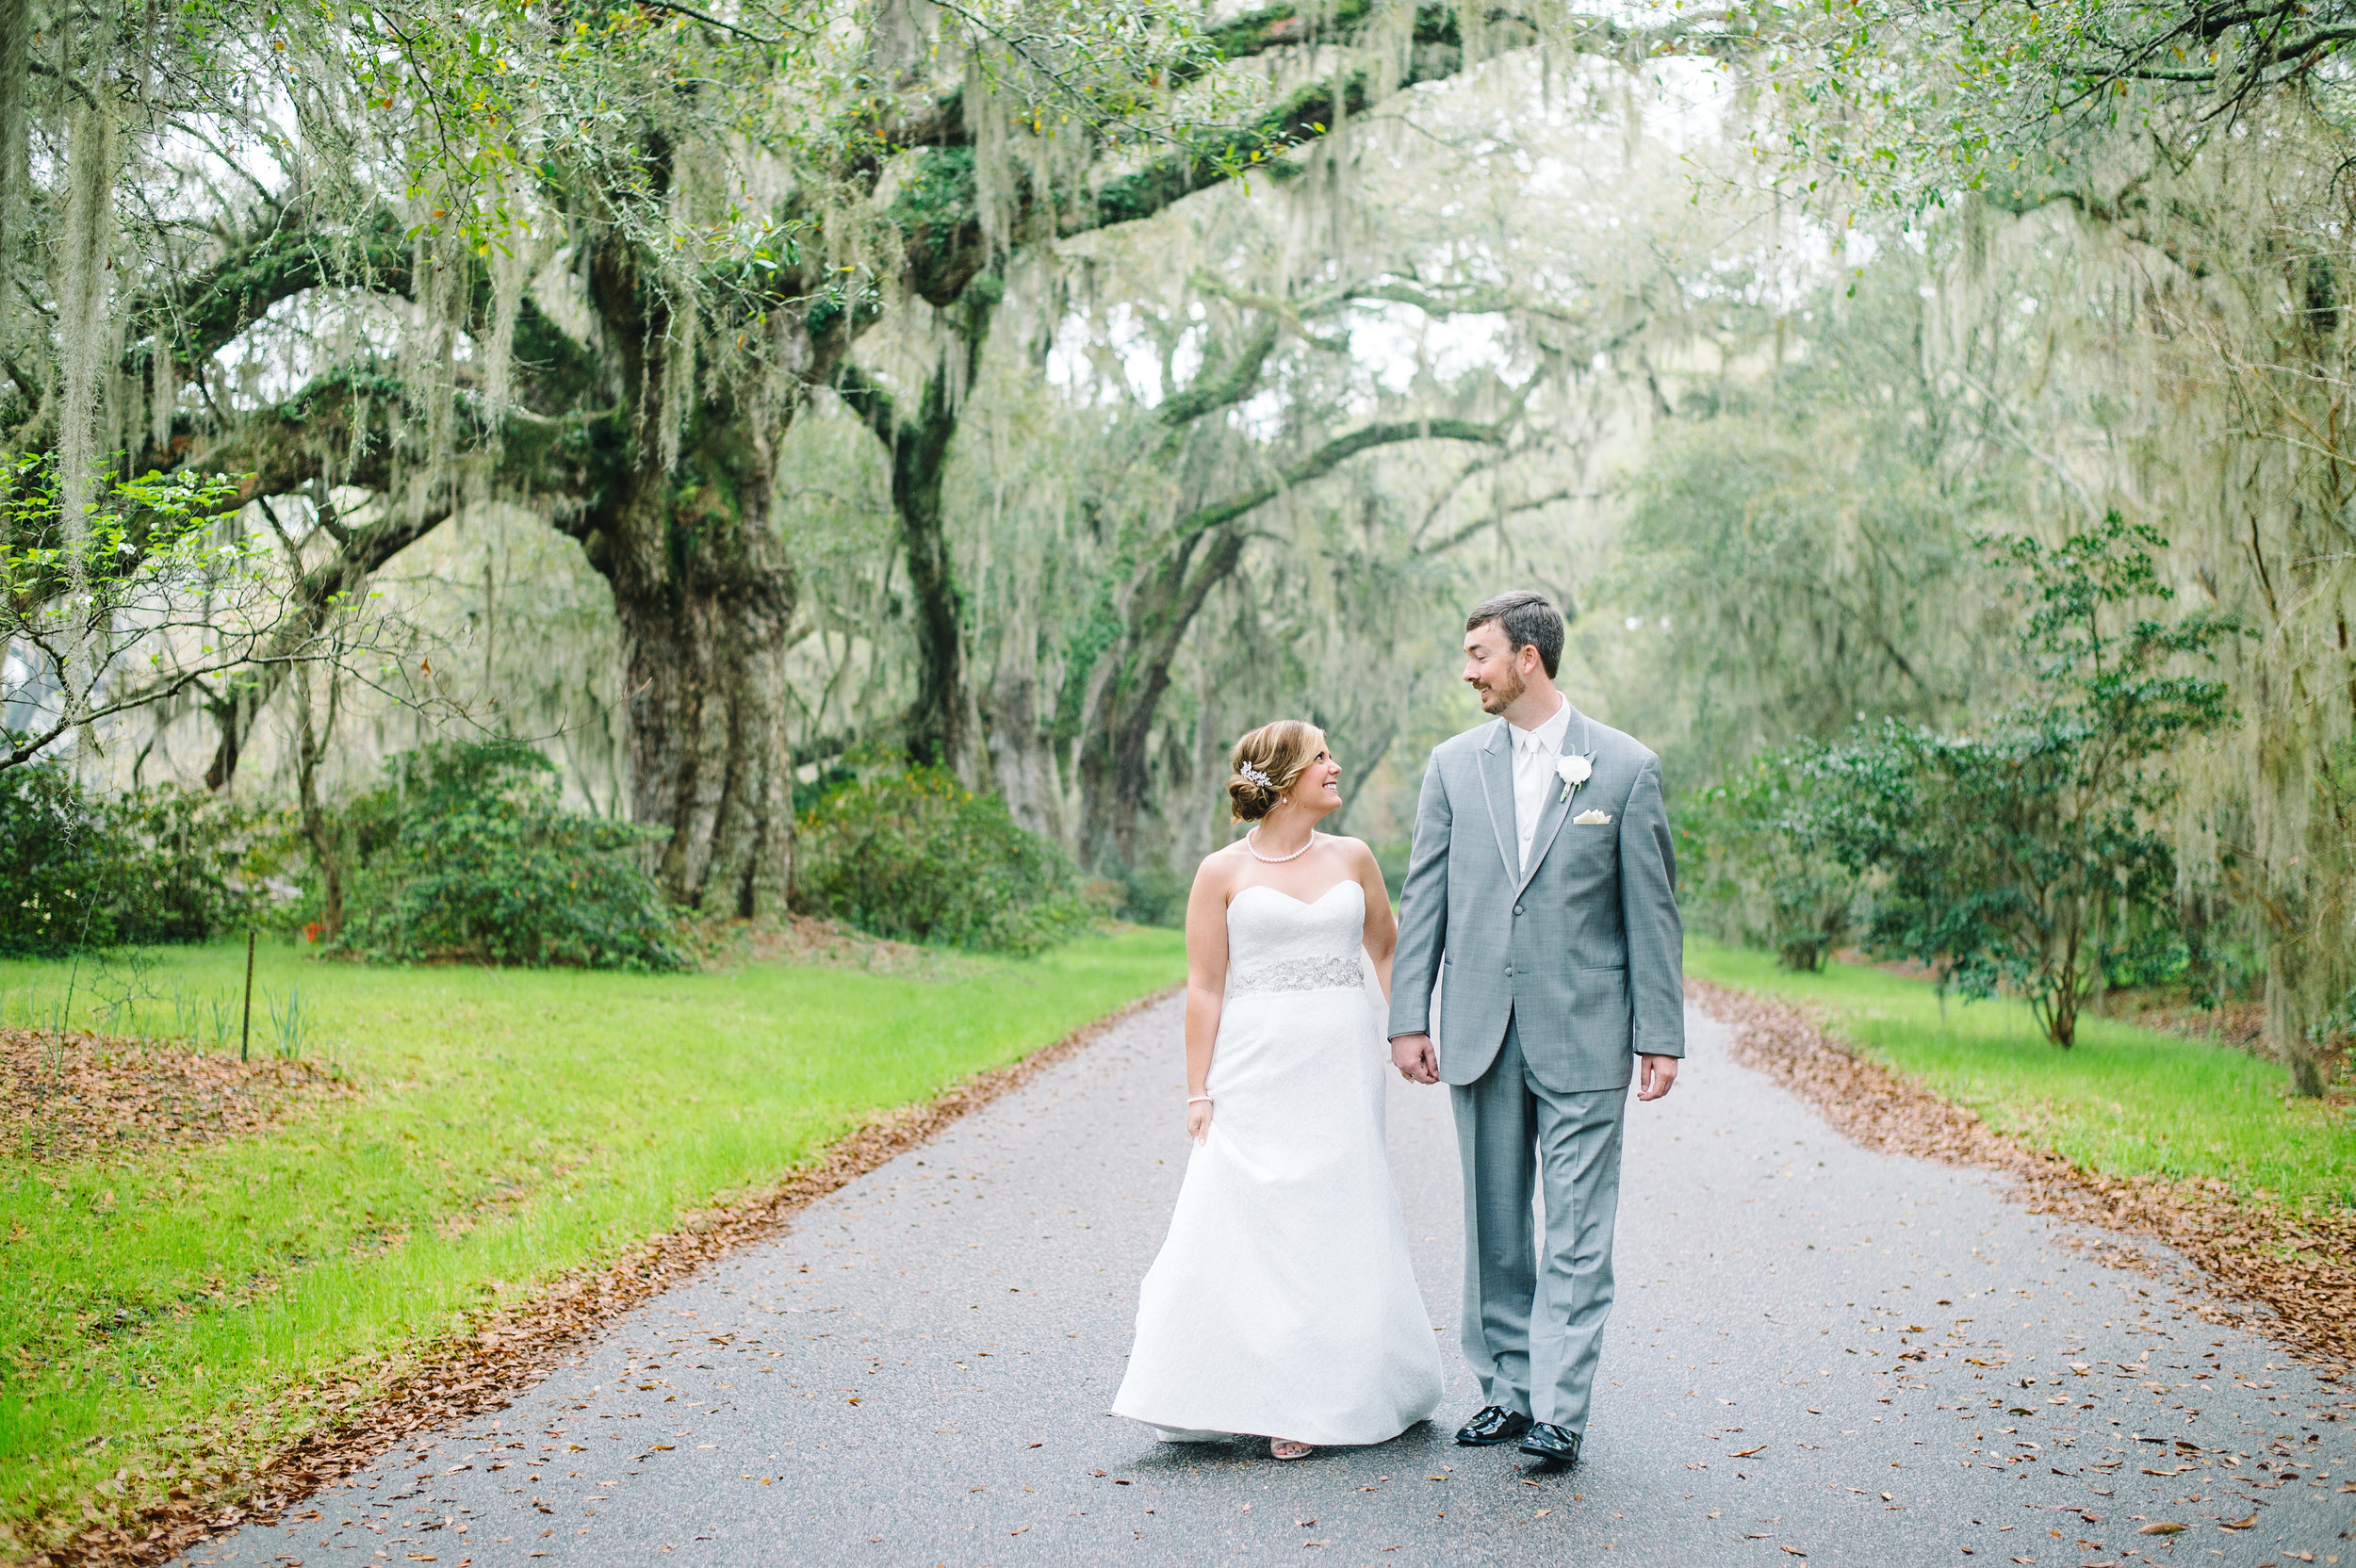 Kimberly+Clinton-MagnoliaPlantationWedding-120 - Copy.jpg